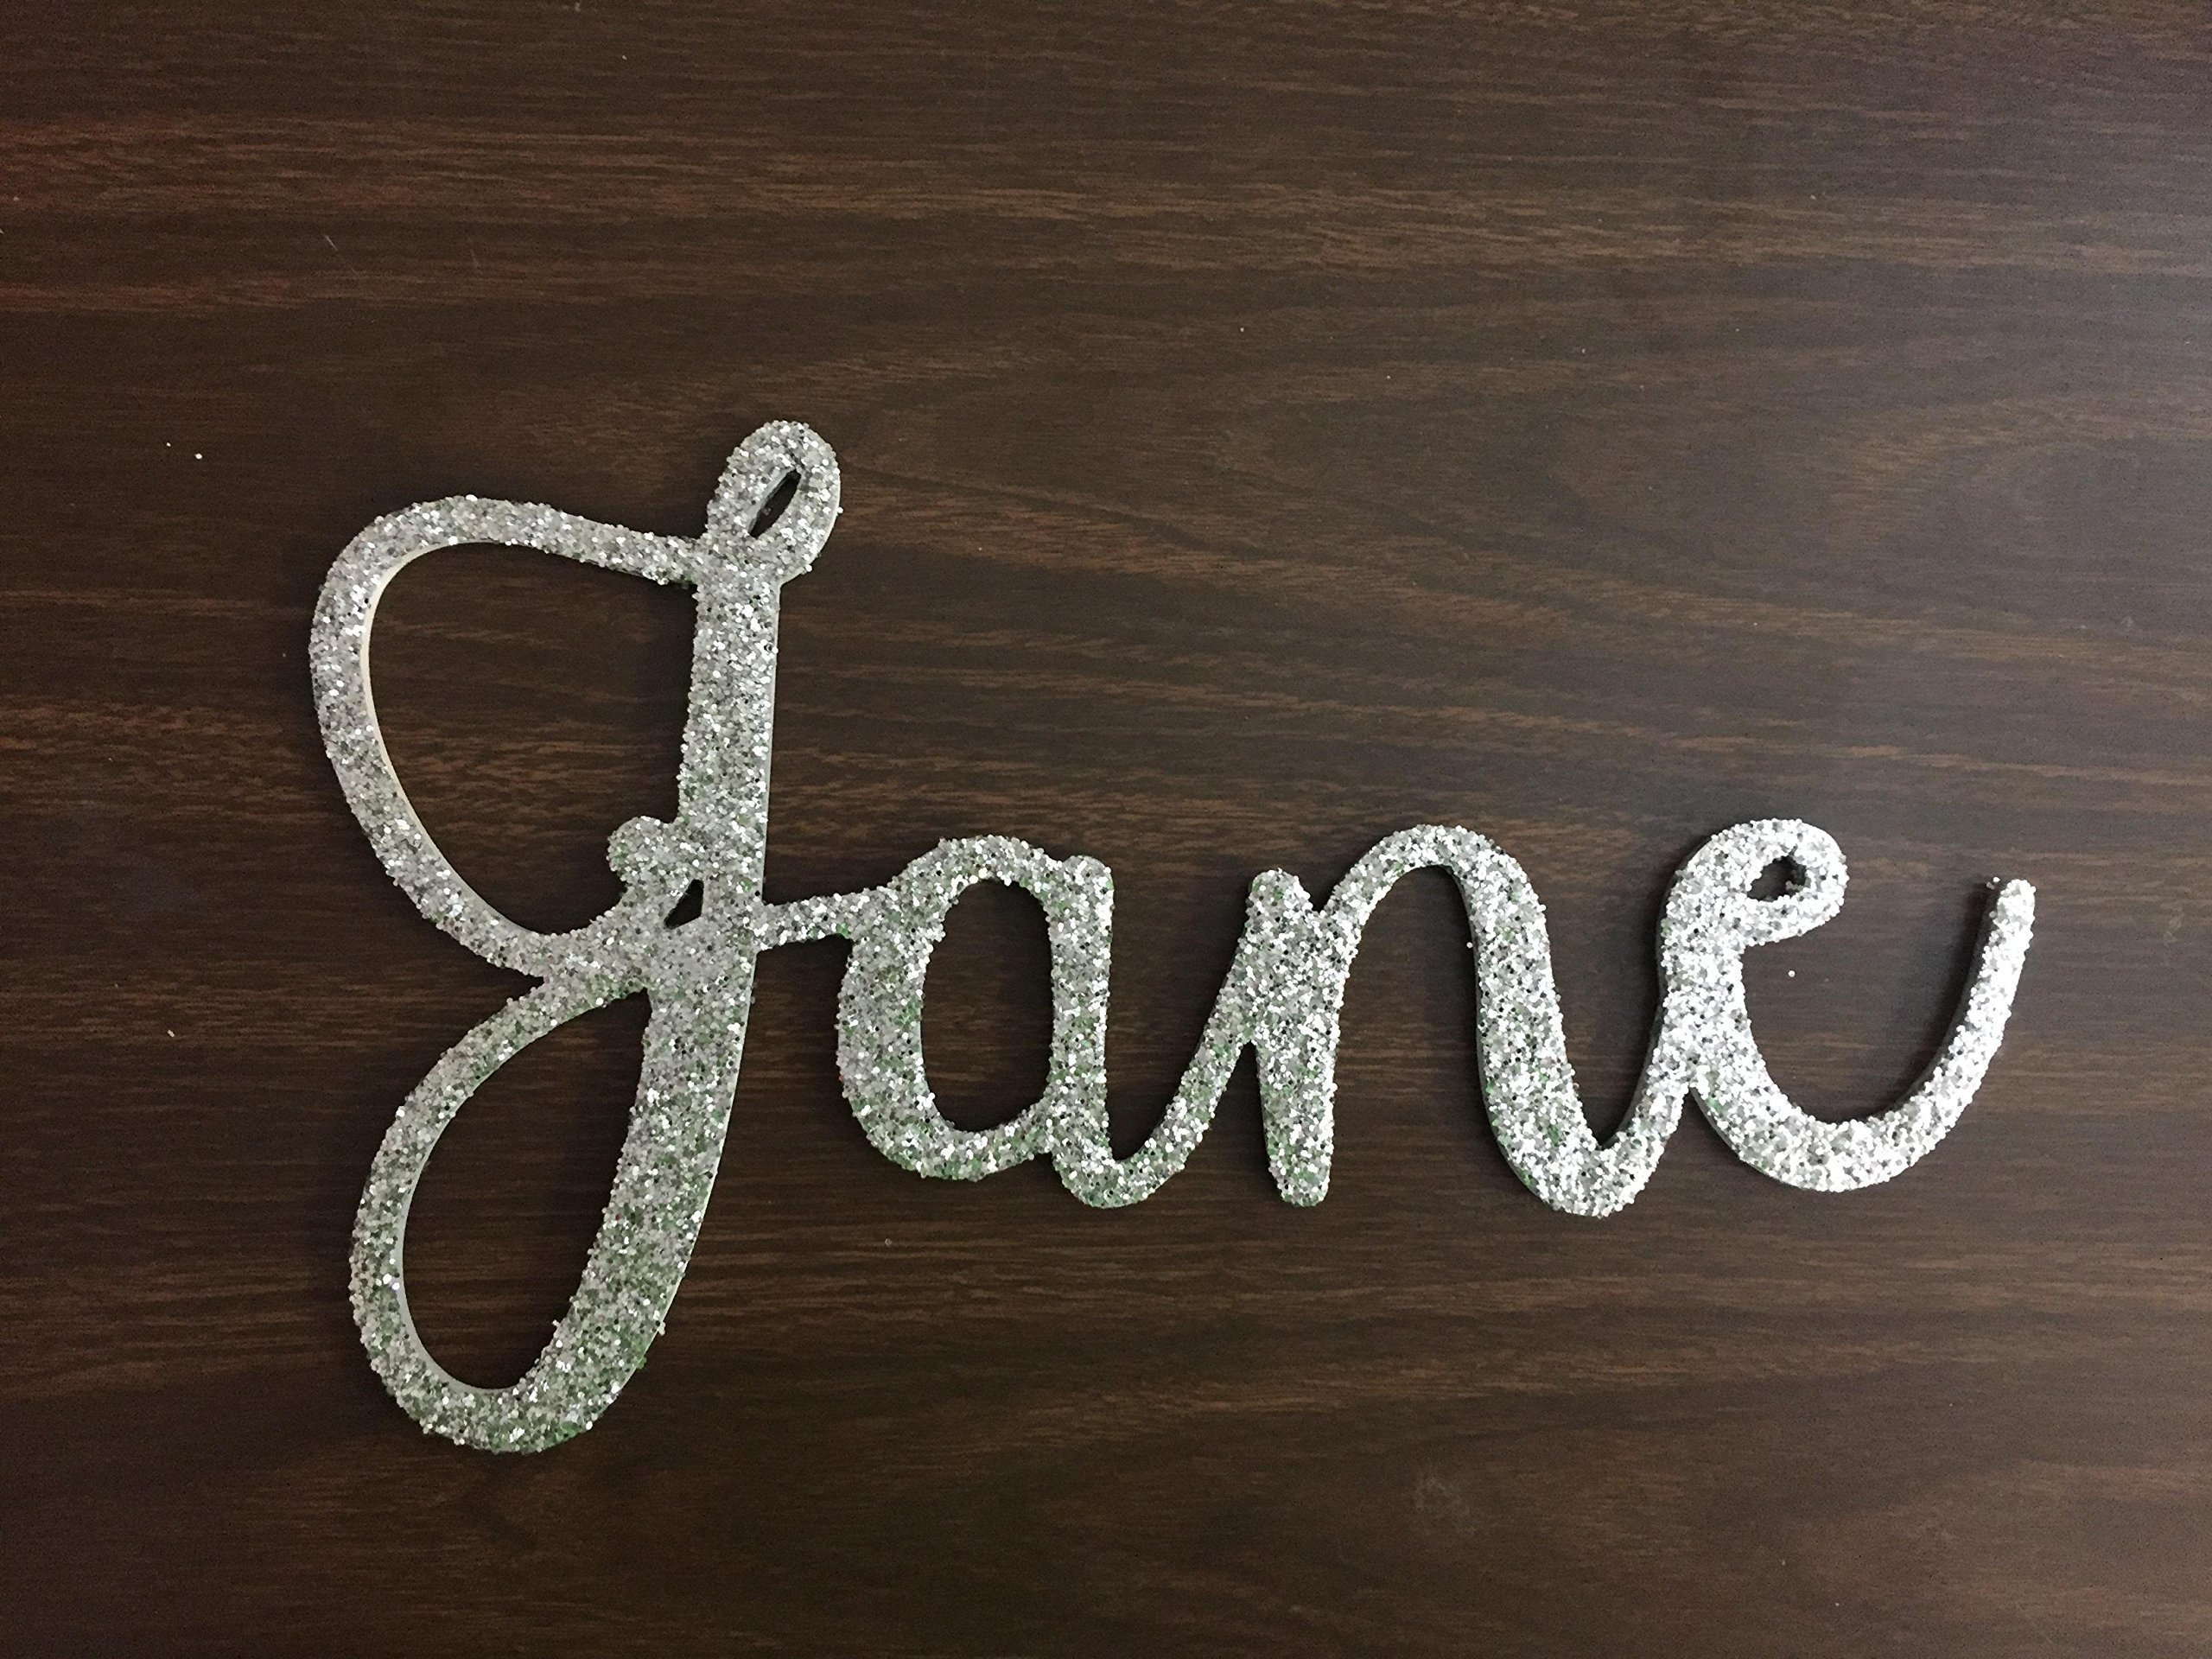 Custom Name Cursive Letter Sign 8''-12'' Tall, Baby Name Wall Art, Nursery Wall Art, Dorm Room Wall Art, Painted, Unpainted, Glitter Name Art, Janda Stylish Script Font Wood Letter Sign